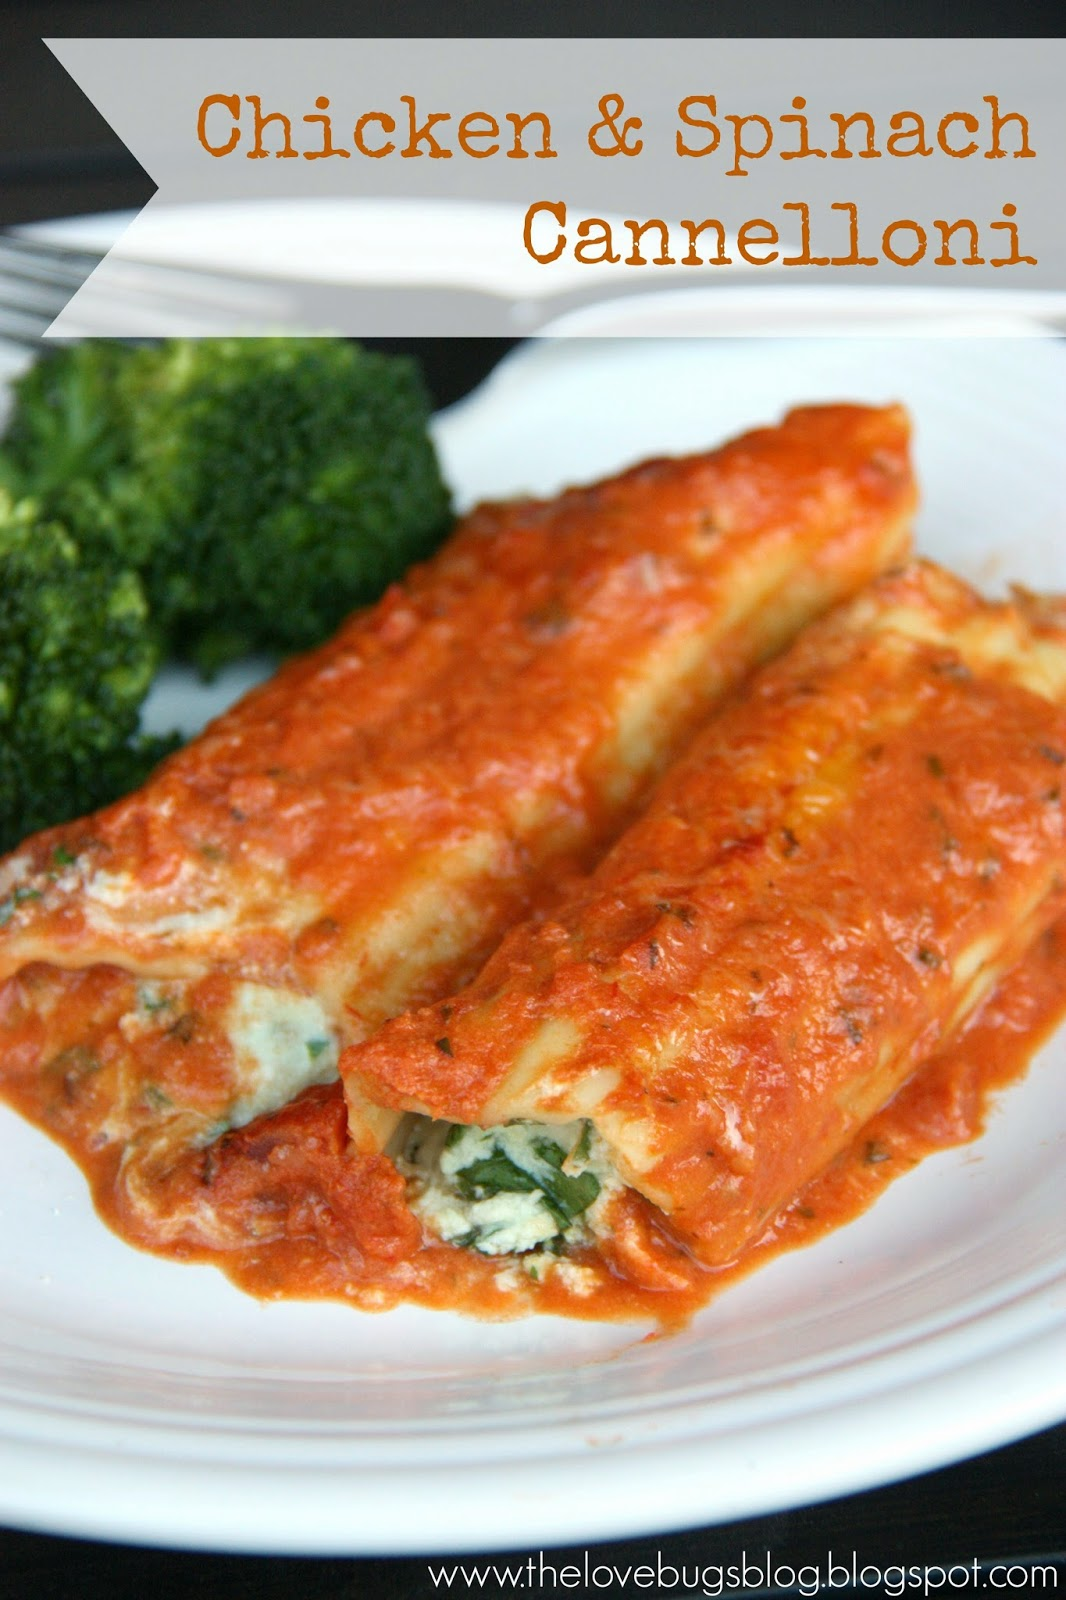 Chicken and Spinach Cannelloni with Pink Sauce